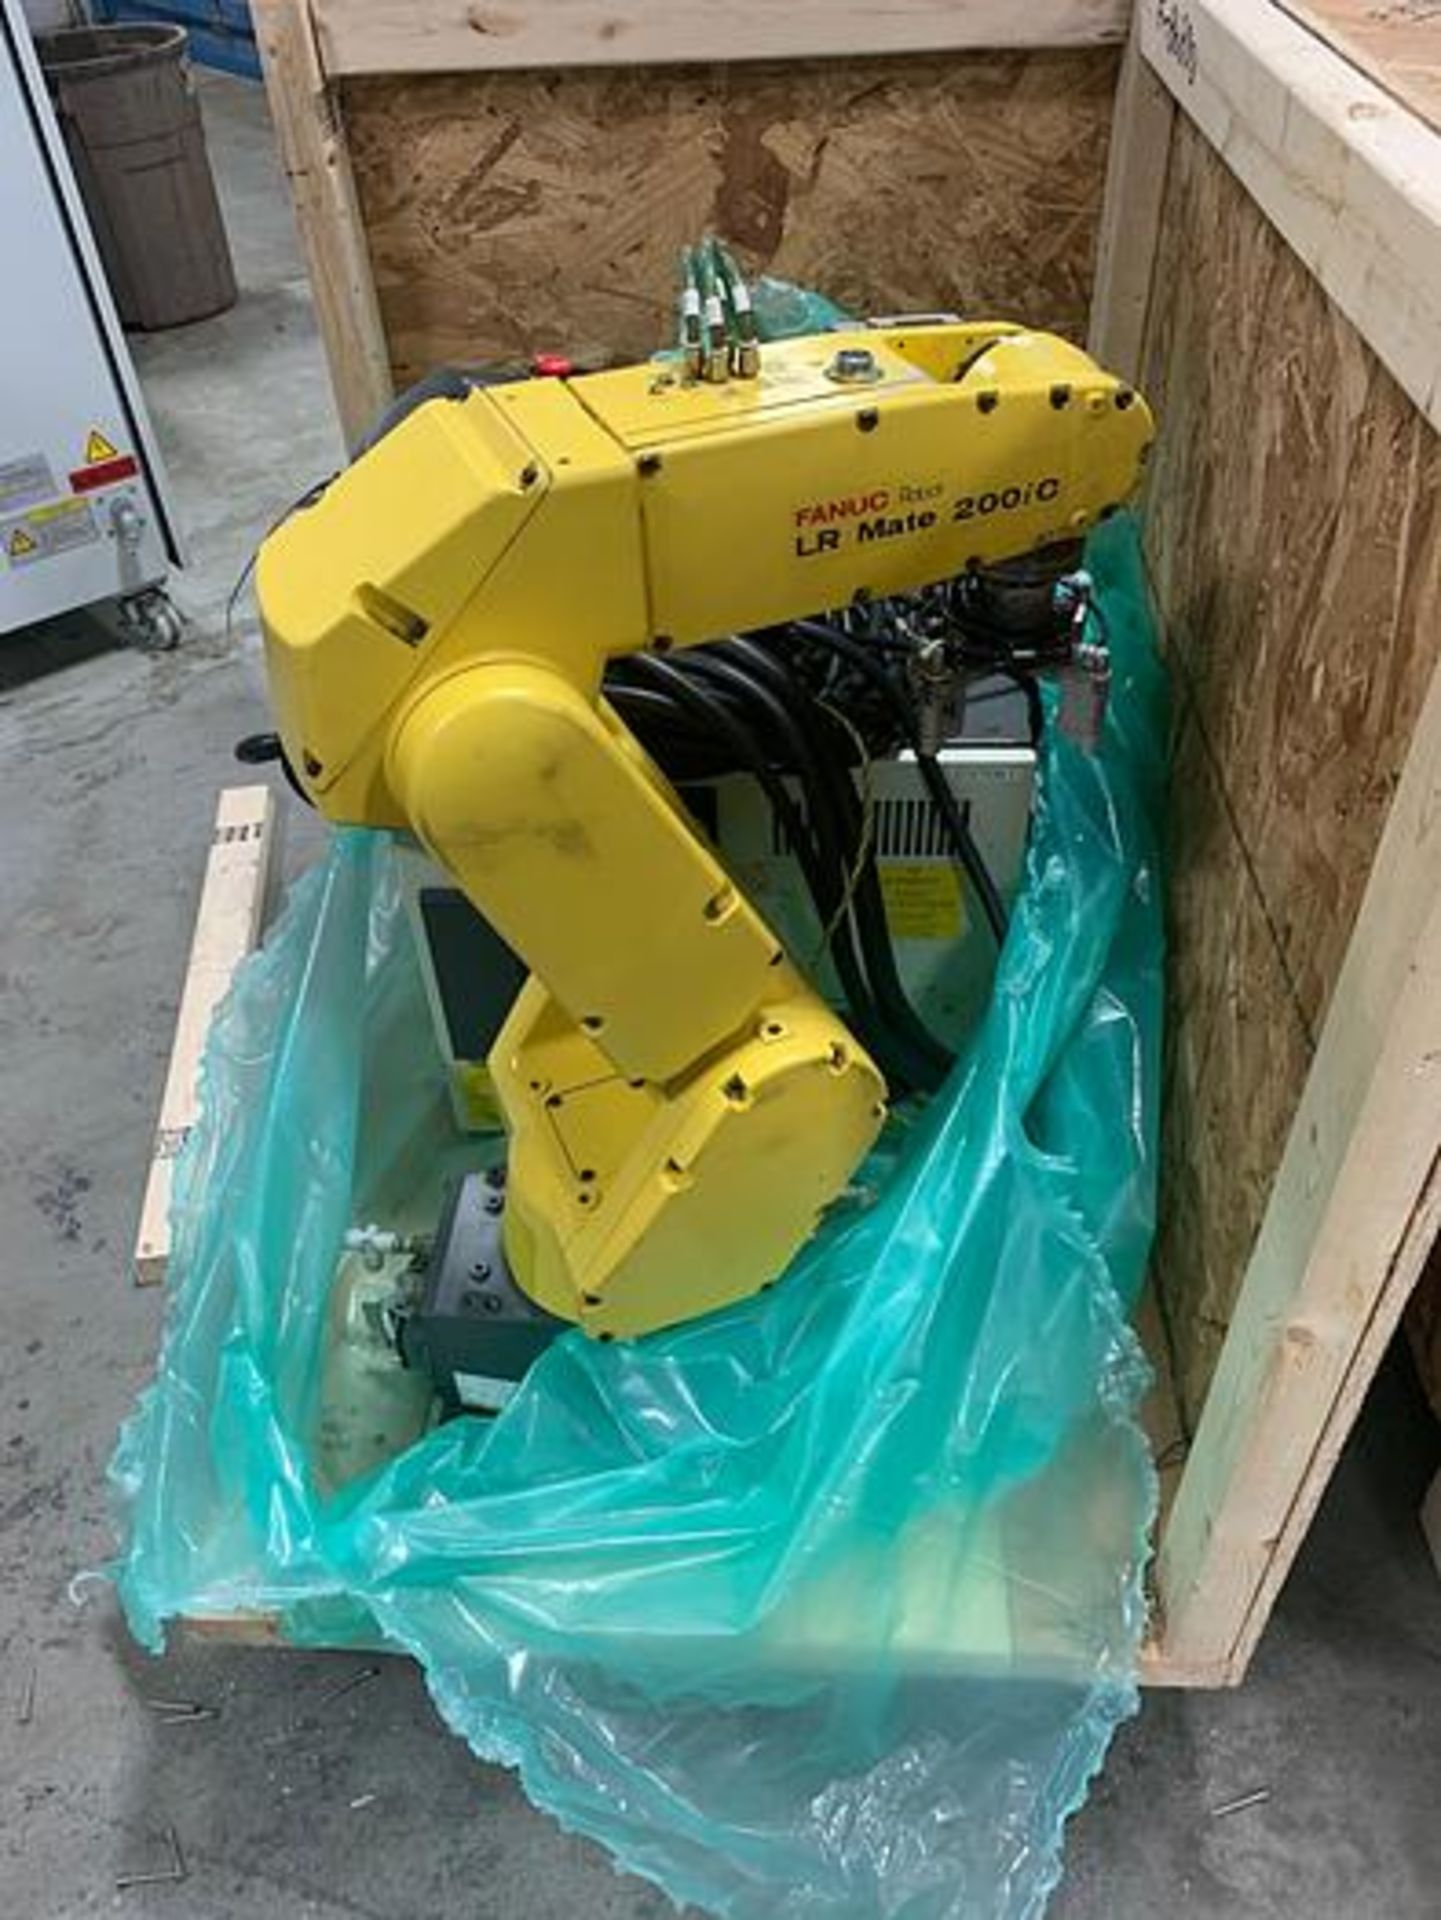 Lot 13 - FANUC ROBOT LRMATE 200iC WITH R-30iA CONTROL, TEACH & CABLES, YEAR 2007, SN 86890